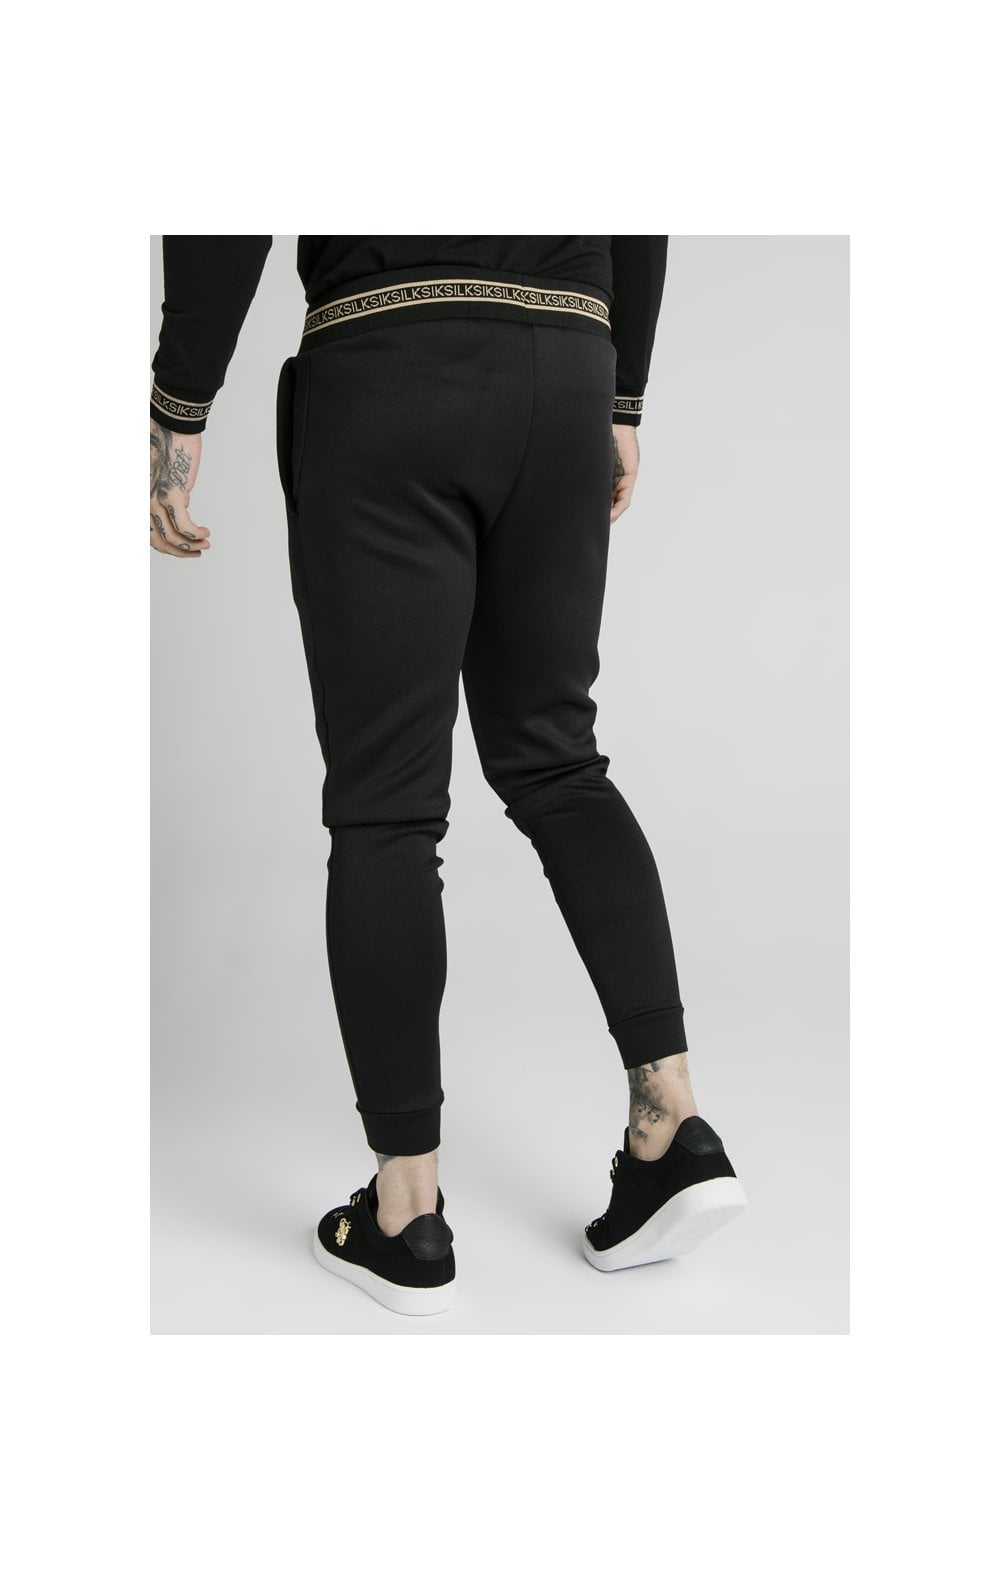 SikSilk Element Muscle Fit Cuff Joggers– Black & Gold (4)